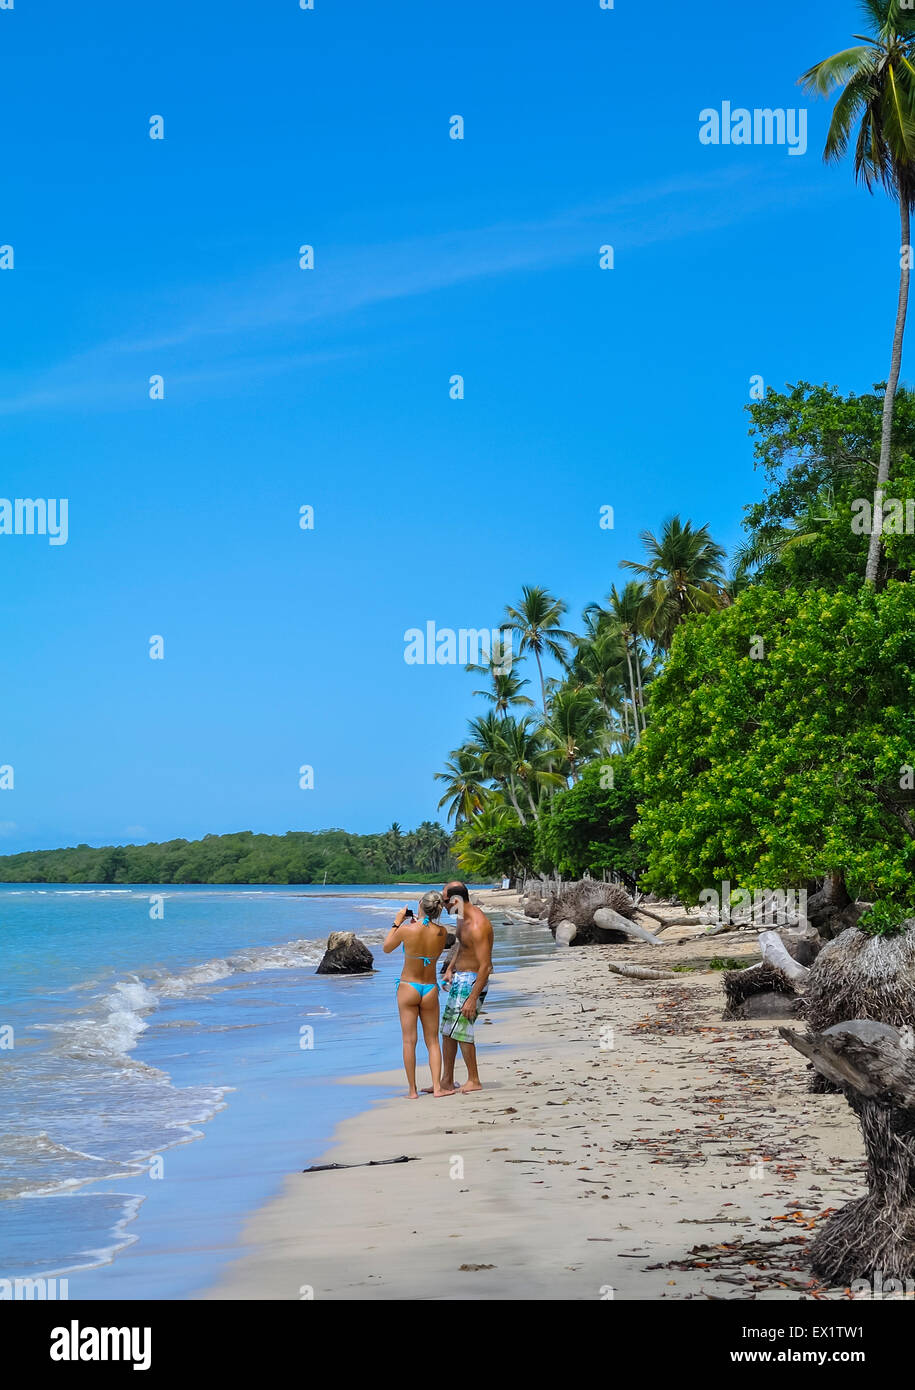 couple on Beach Morro de sao paulo Brazil south america - Stock Image